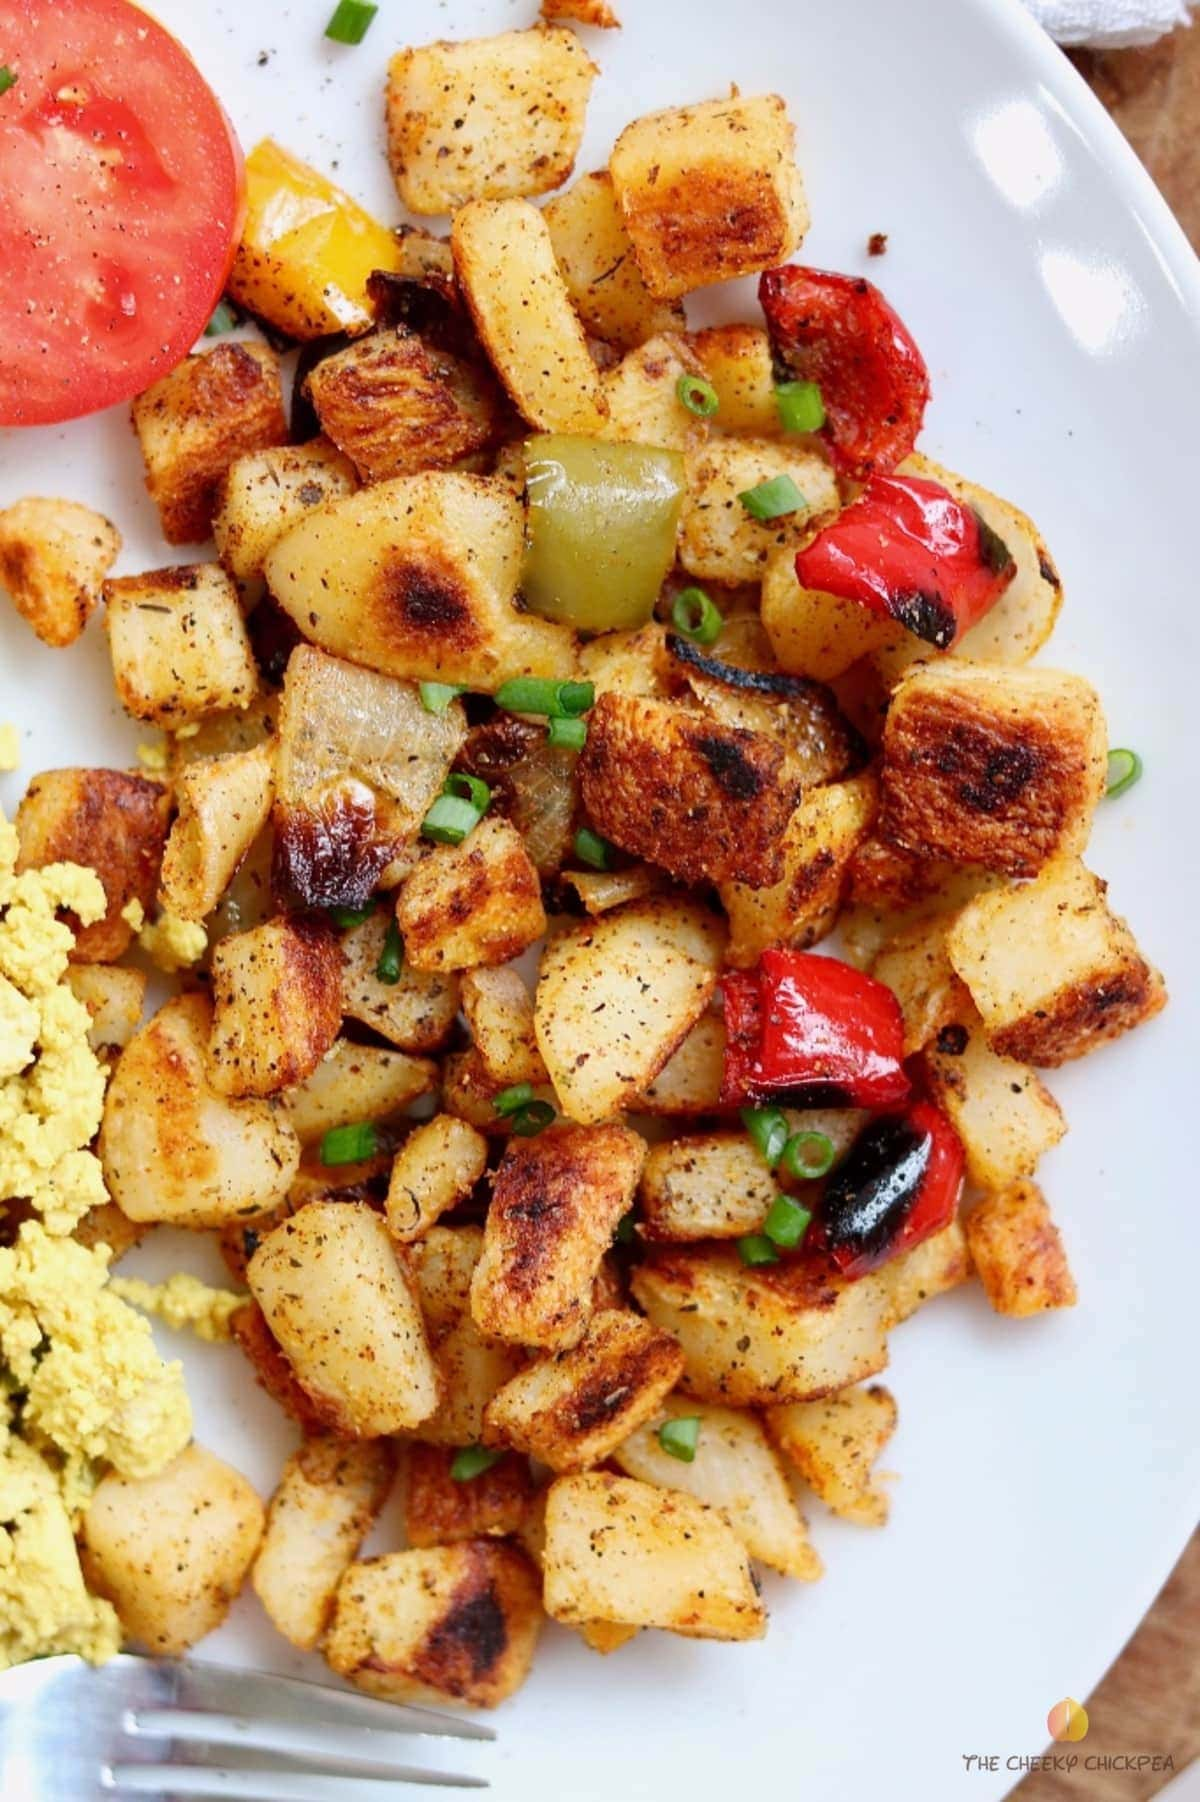 Best Home Fries Recipe Breakfast Potatoes The Cheeky Chickpea